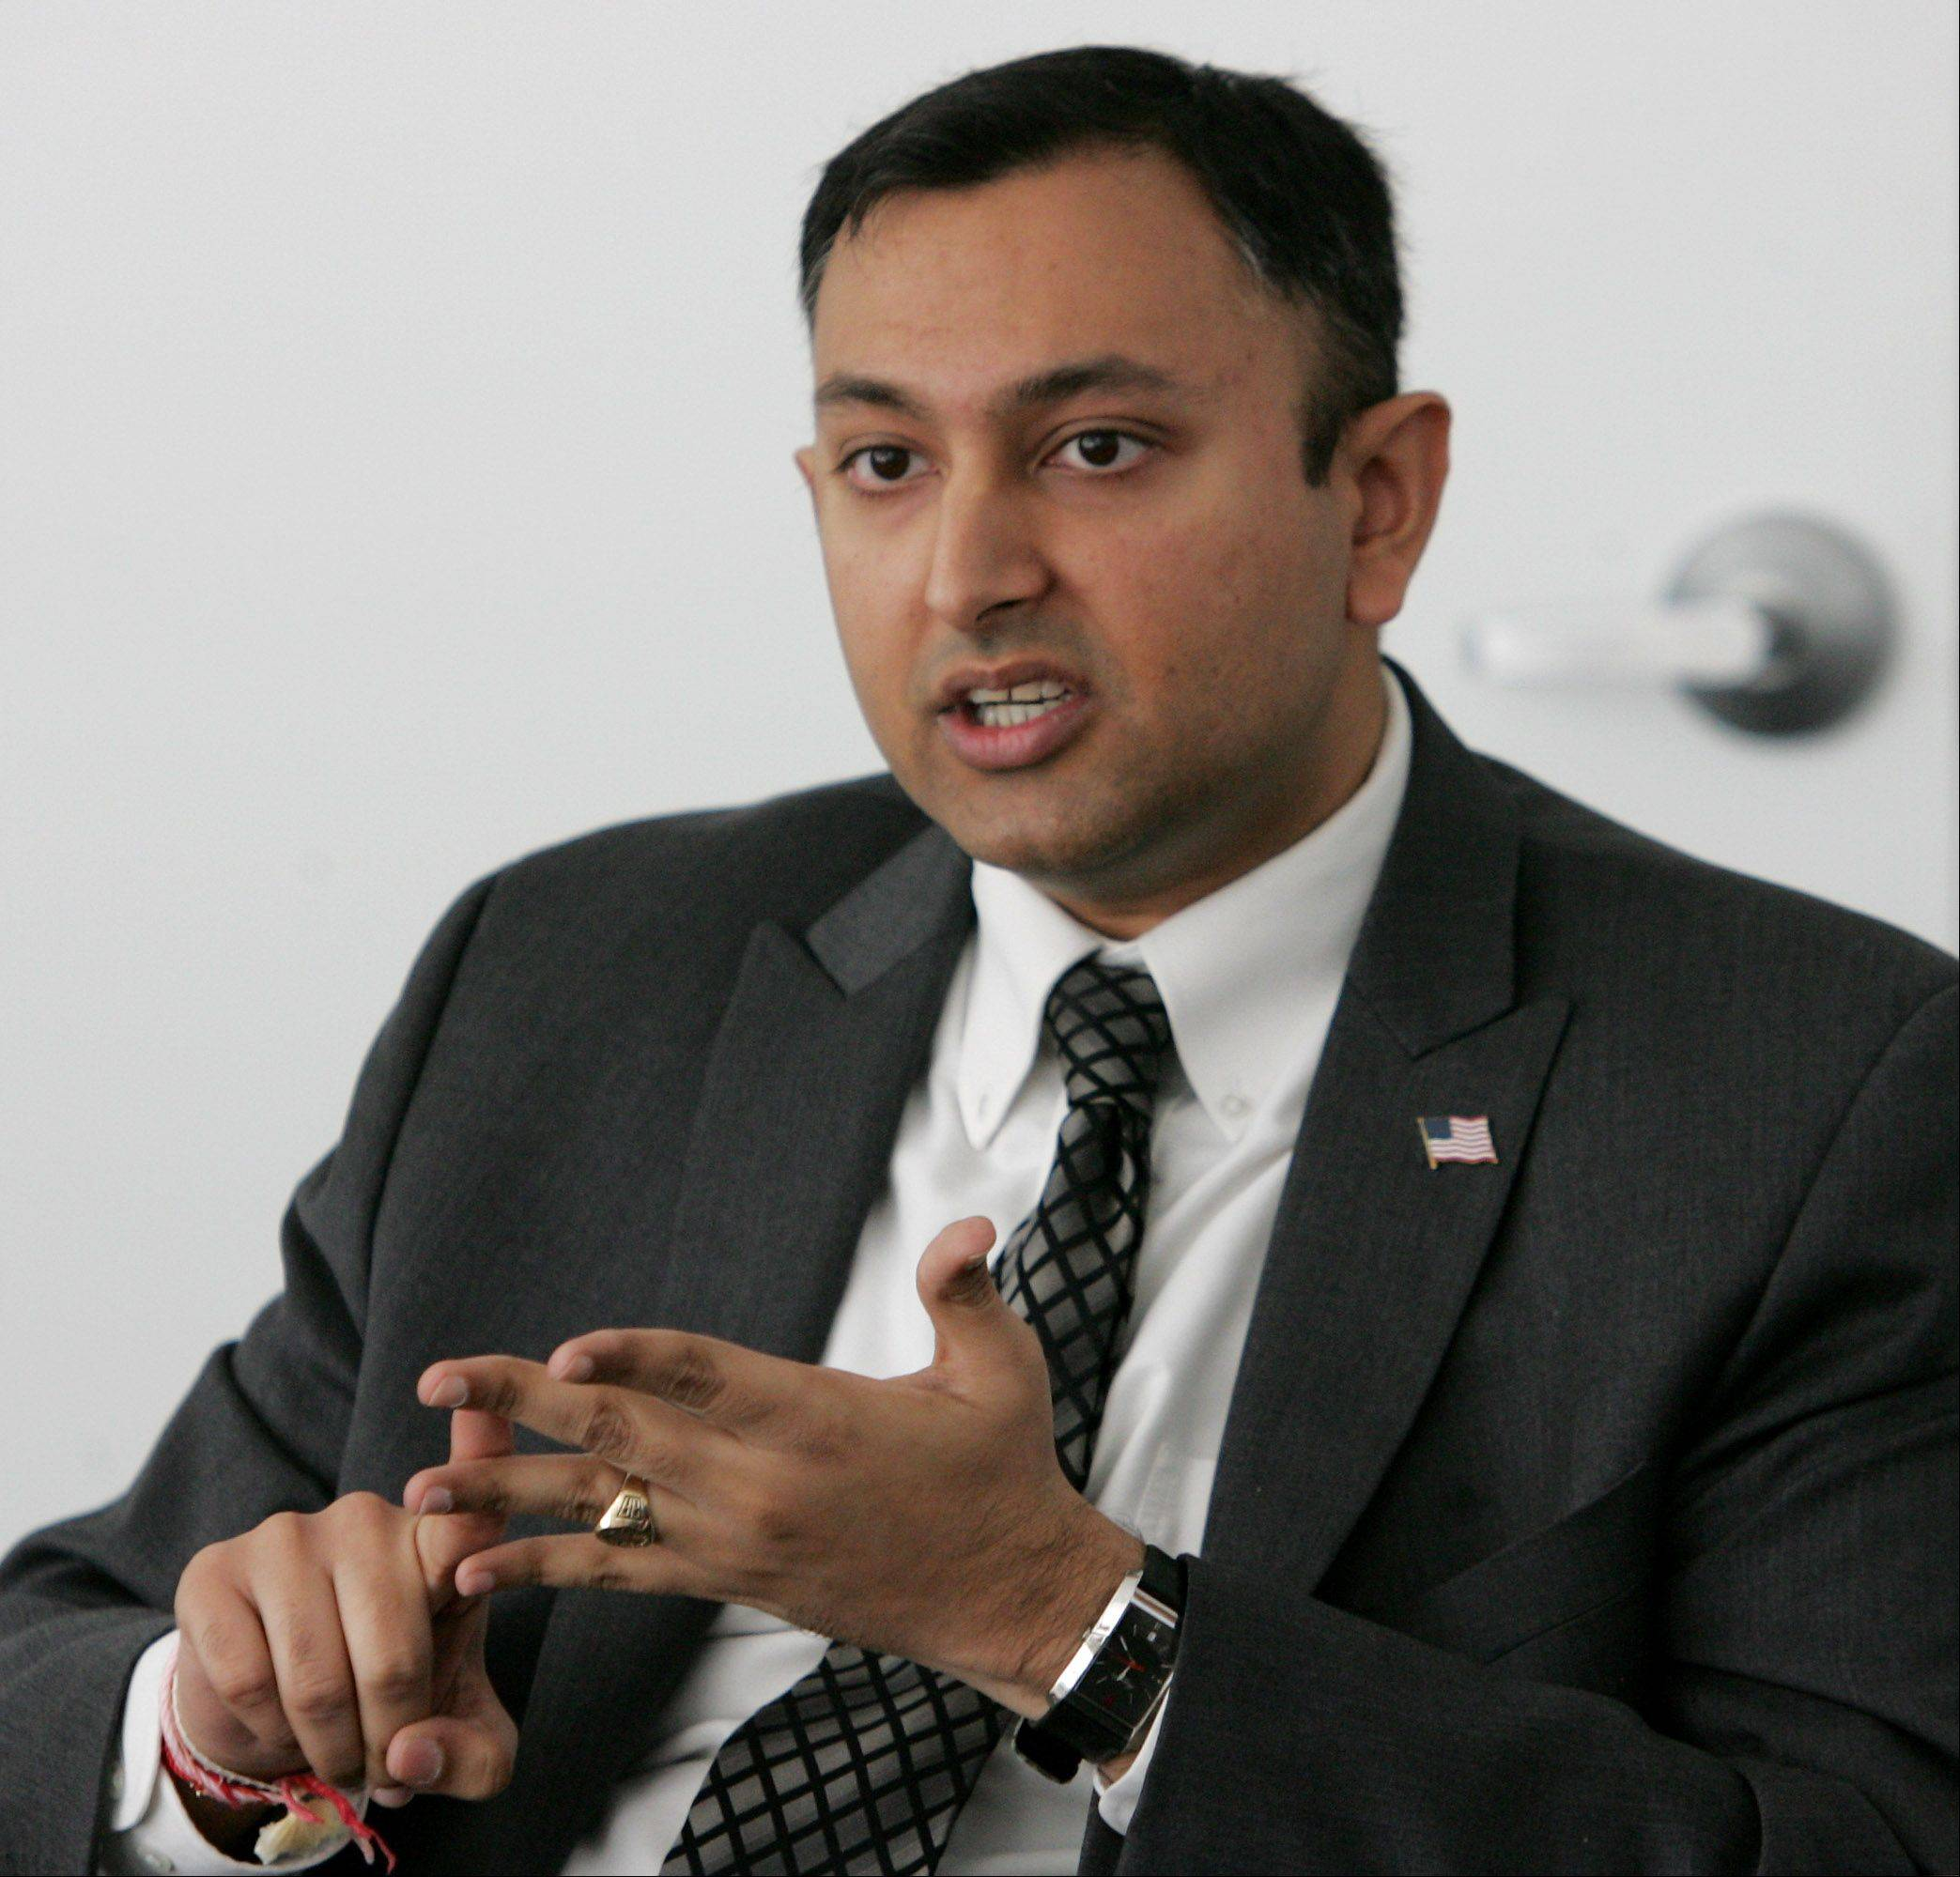 10th Congressional District Democratic candidate Vivek Bavda of Mundelein discusses his views at the Daily Herald office in Libertyville.